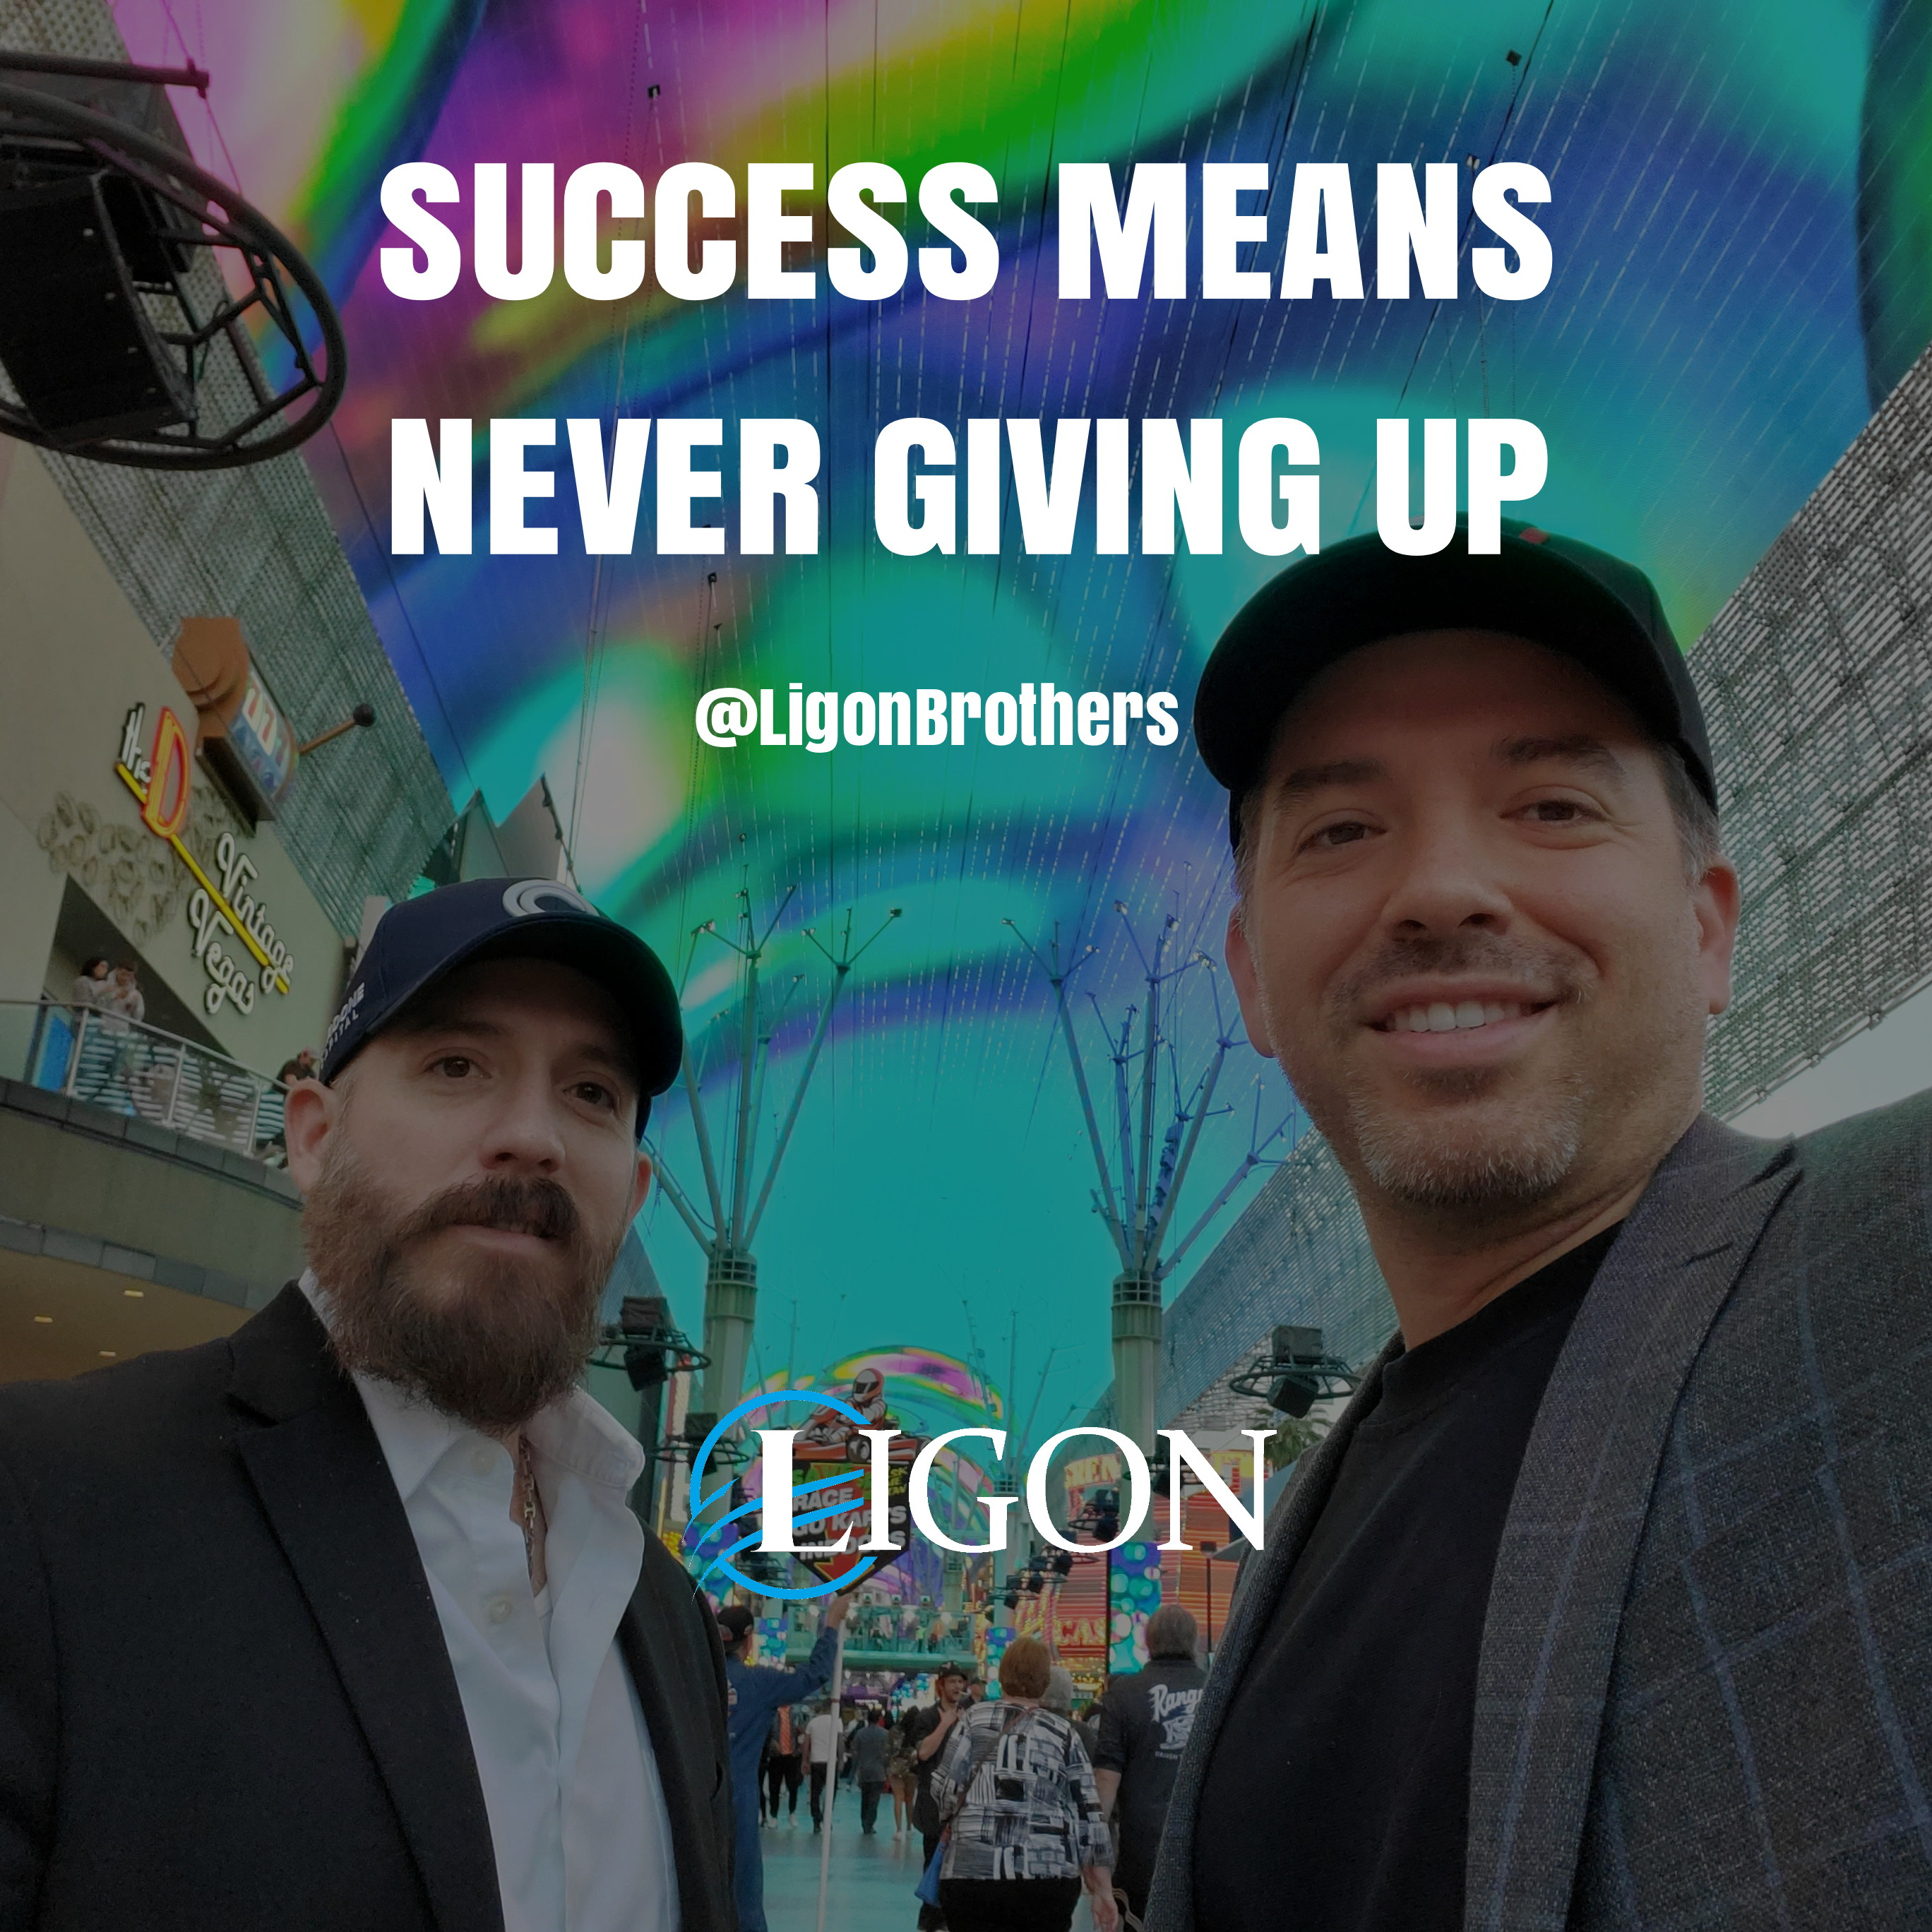 Success Means Never Giving Up